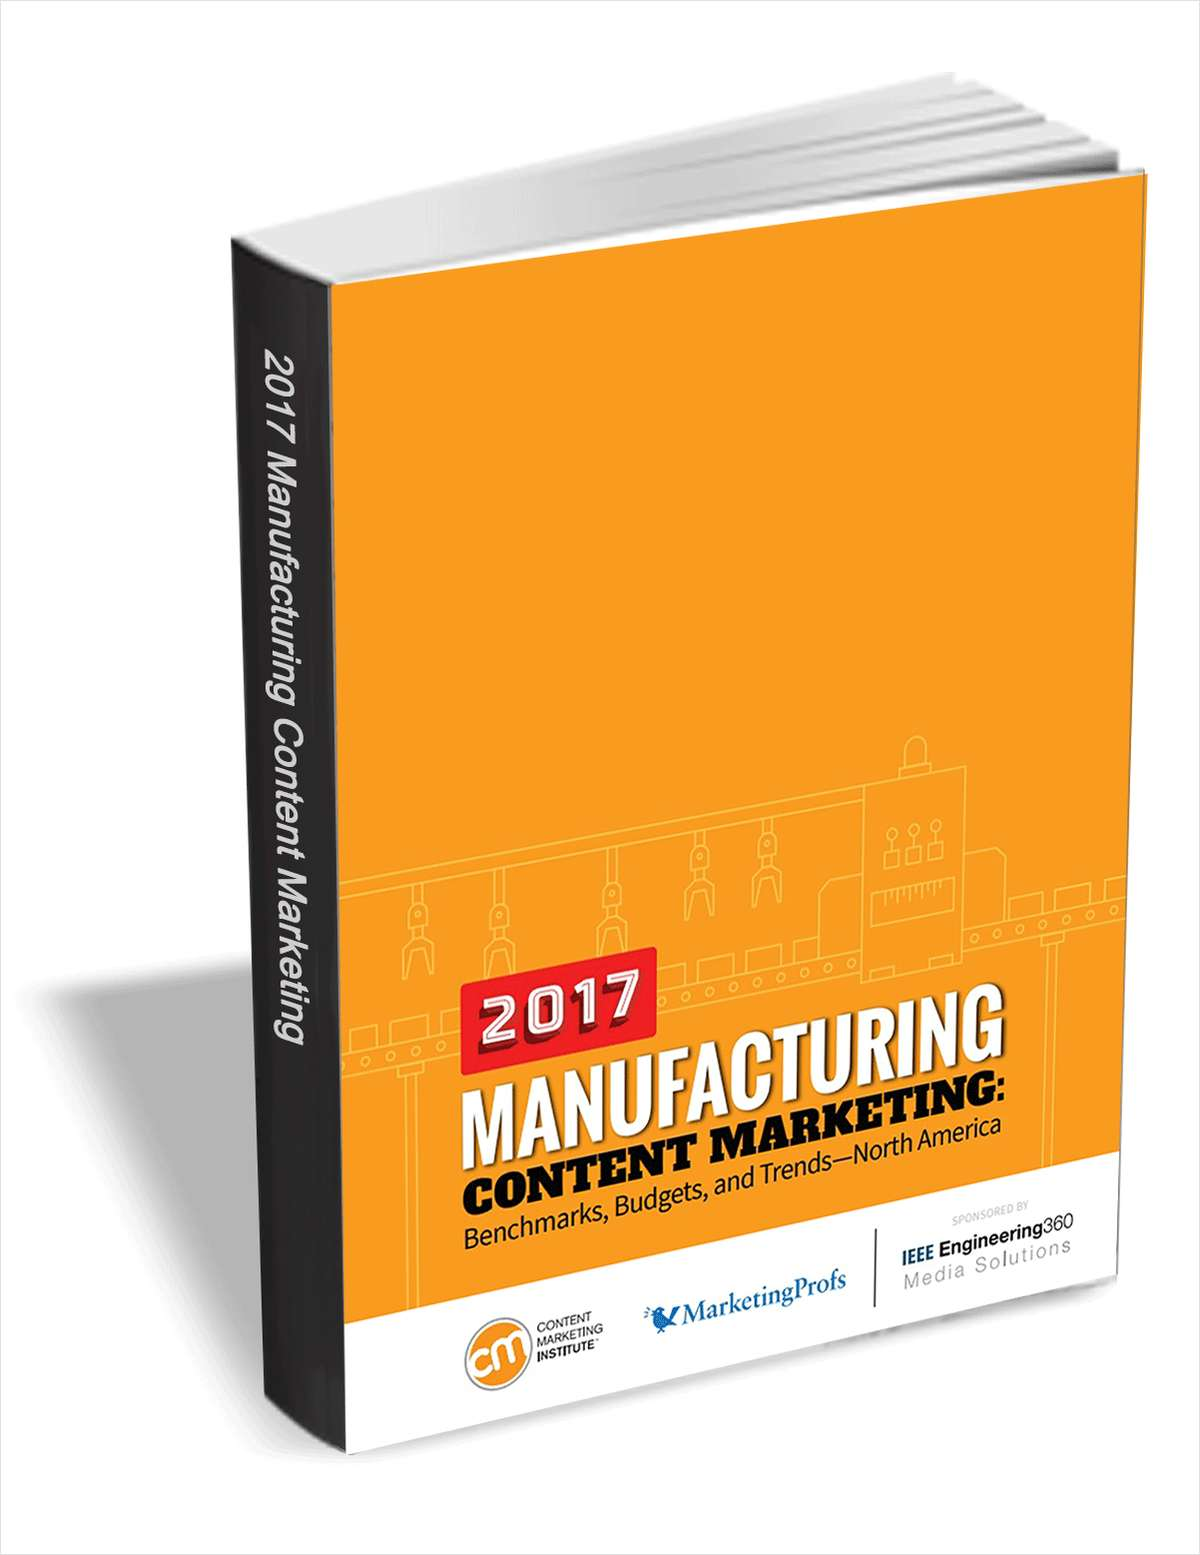 Manufacturing Content Marketing - Benchmarks, Budgets, and Trends